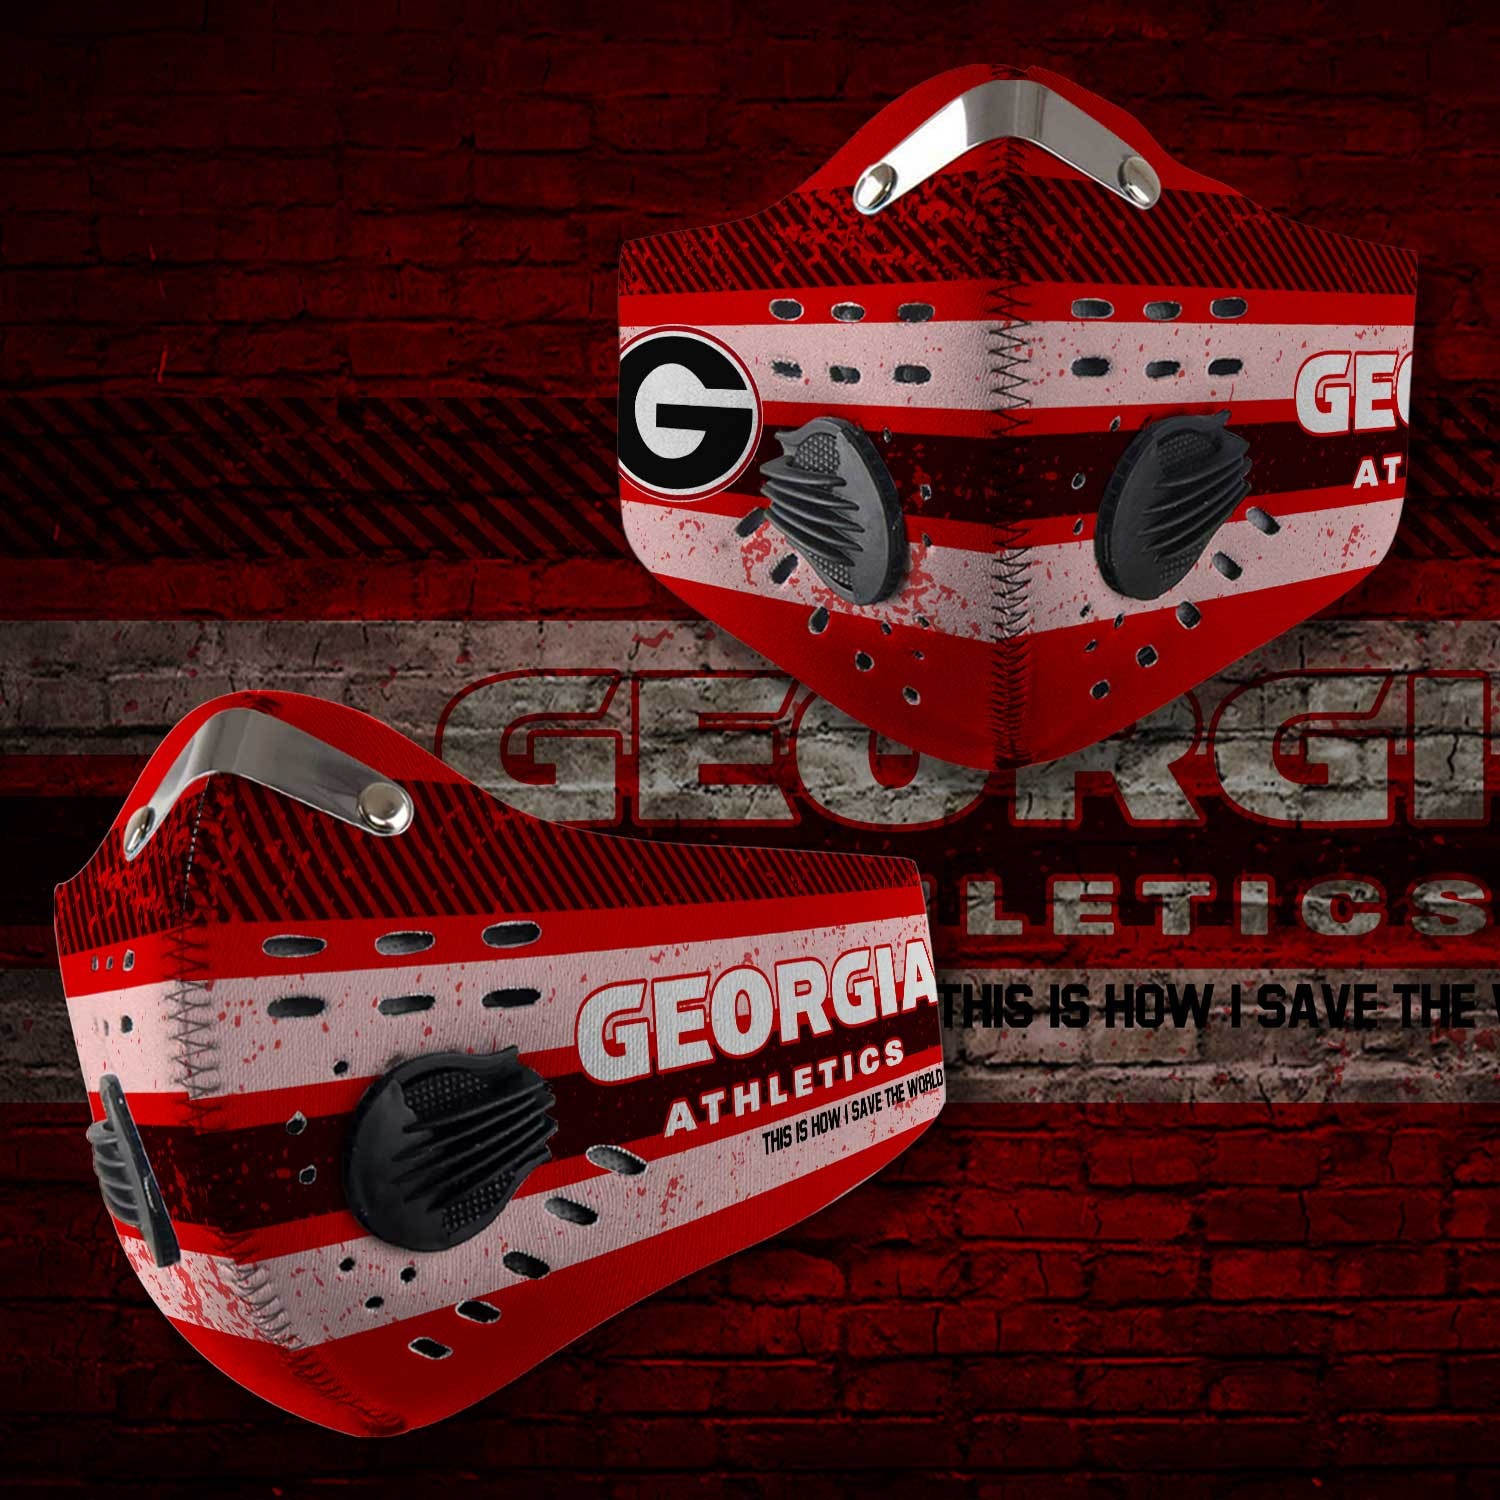 Georgia bulldogs football this is how i save the world carbon filter face mask 2